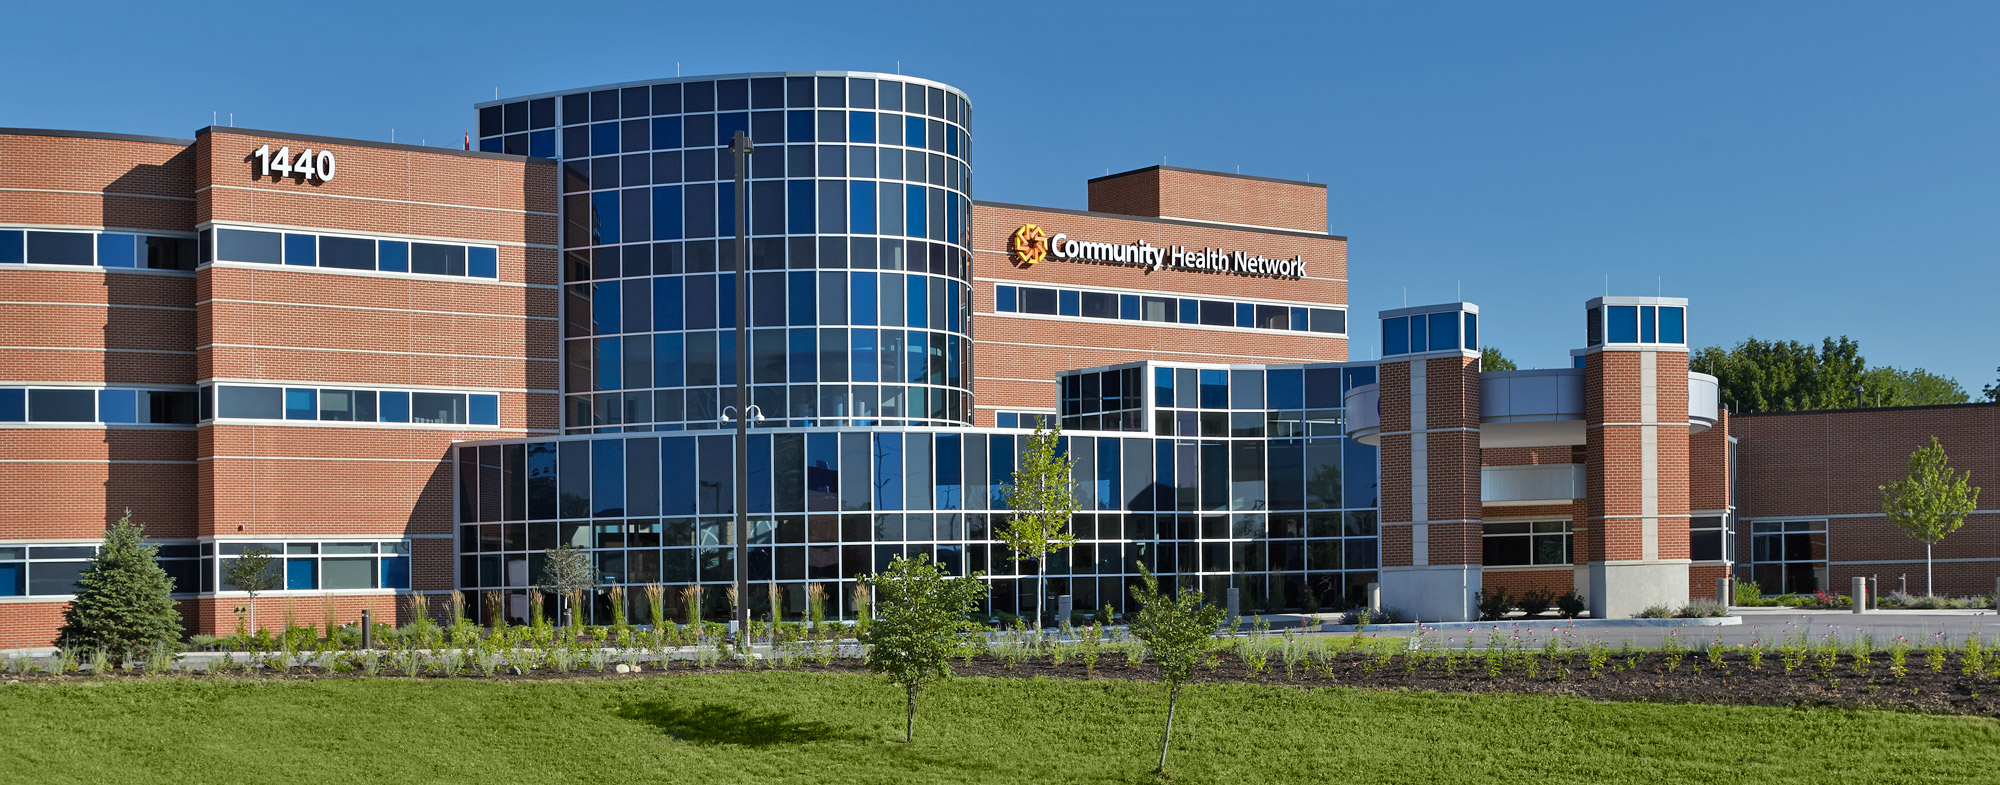 Community Cancer Center South Community Health Network